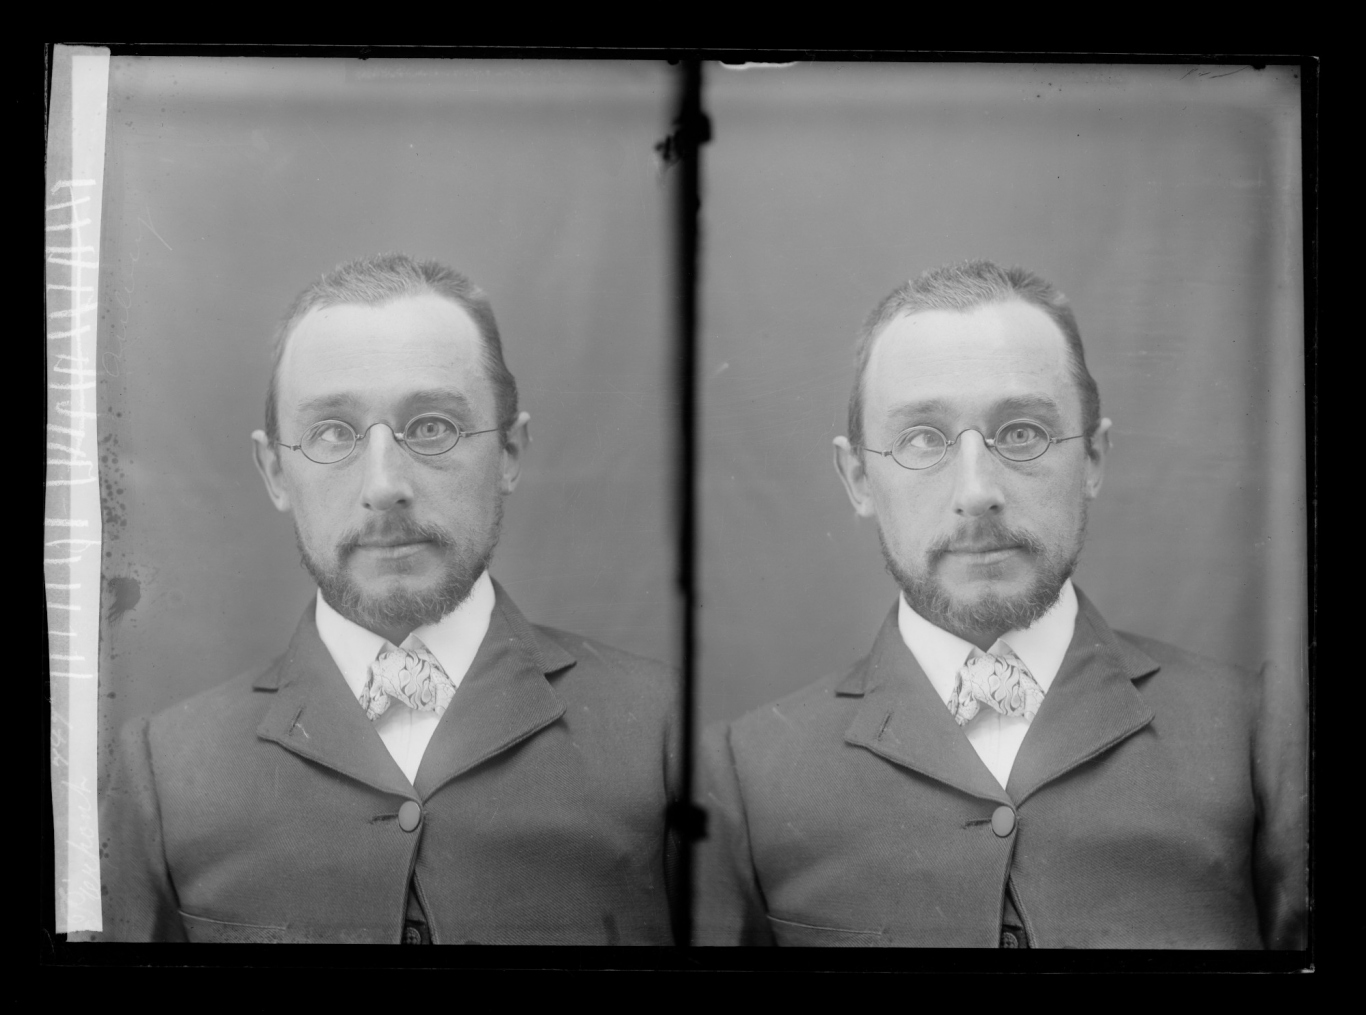 Double glass plate black and white photo of man with short beard, wire-framed glasses and a slightly turned in eye.